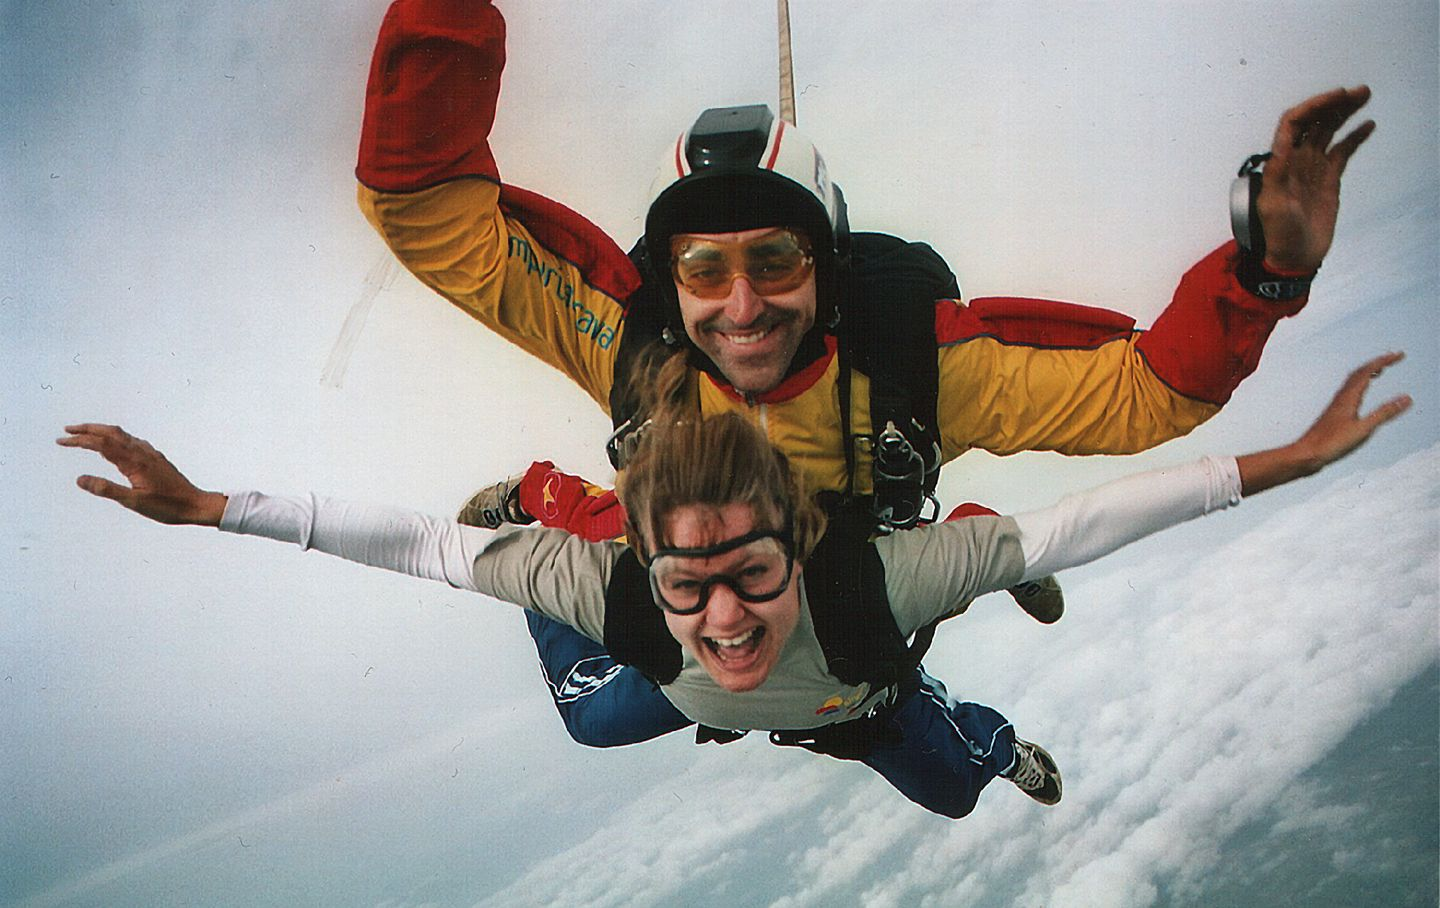 Skydiving Guy James via photopin cc